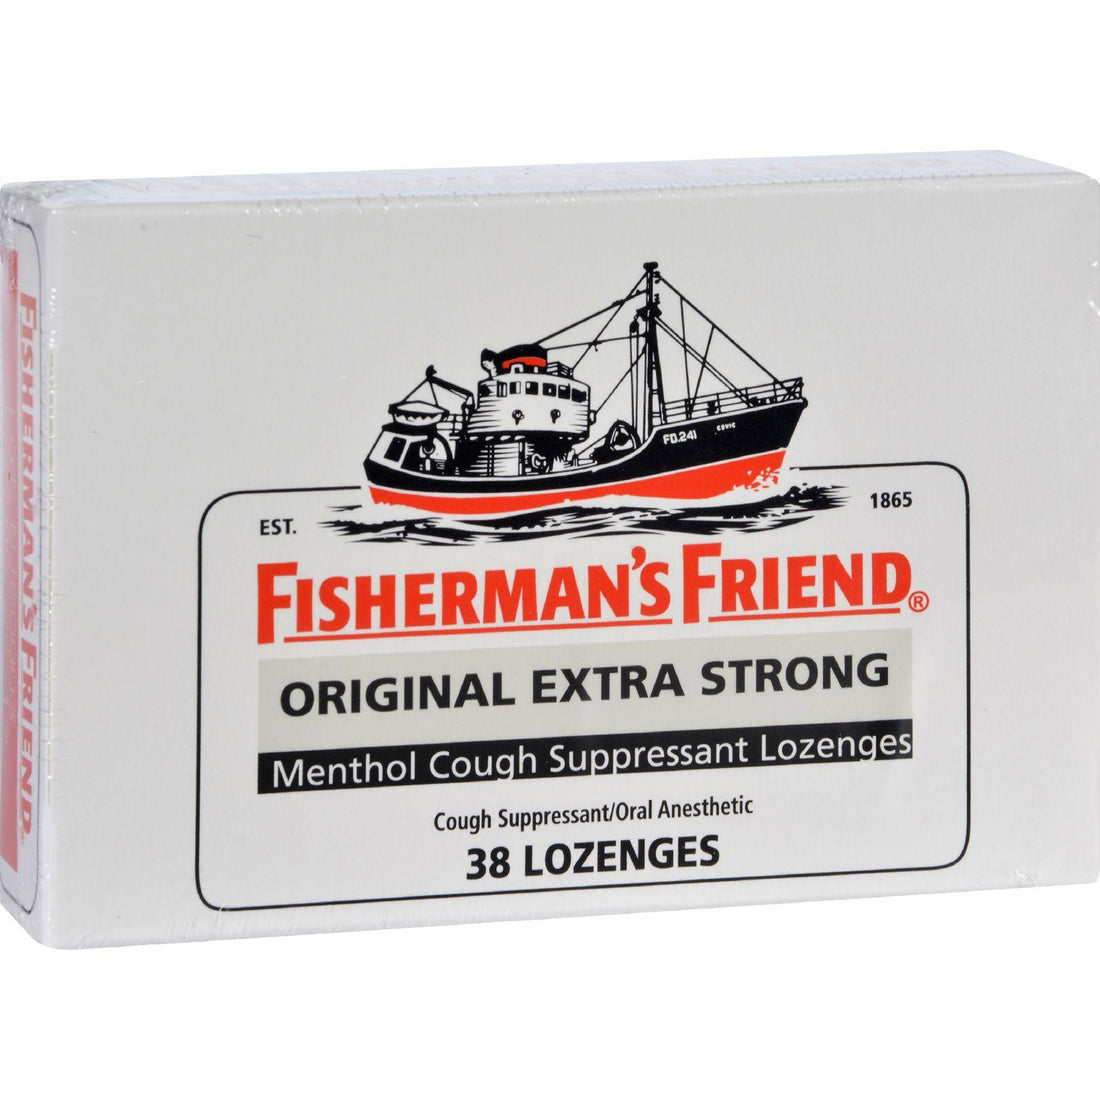 Mother Mantis: Fisherman's Friend Lozenges - Original Extra Strong - Dsp - 38 Ct - 1 Case Fisherman's Friend